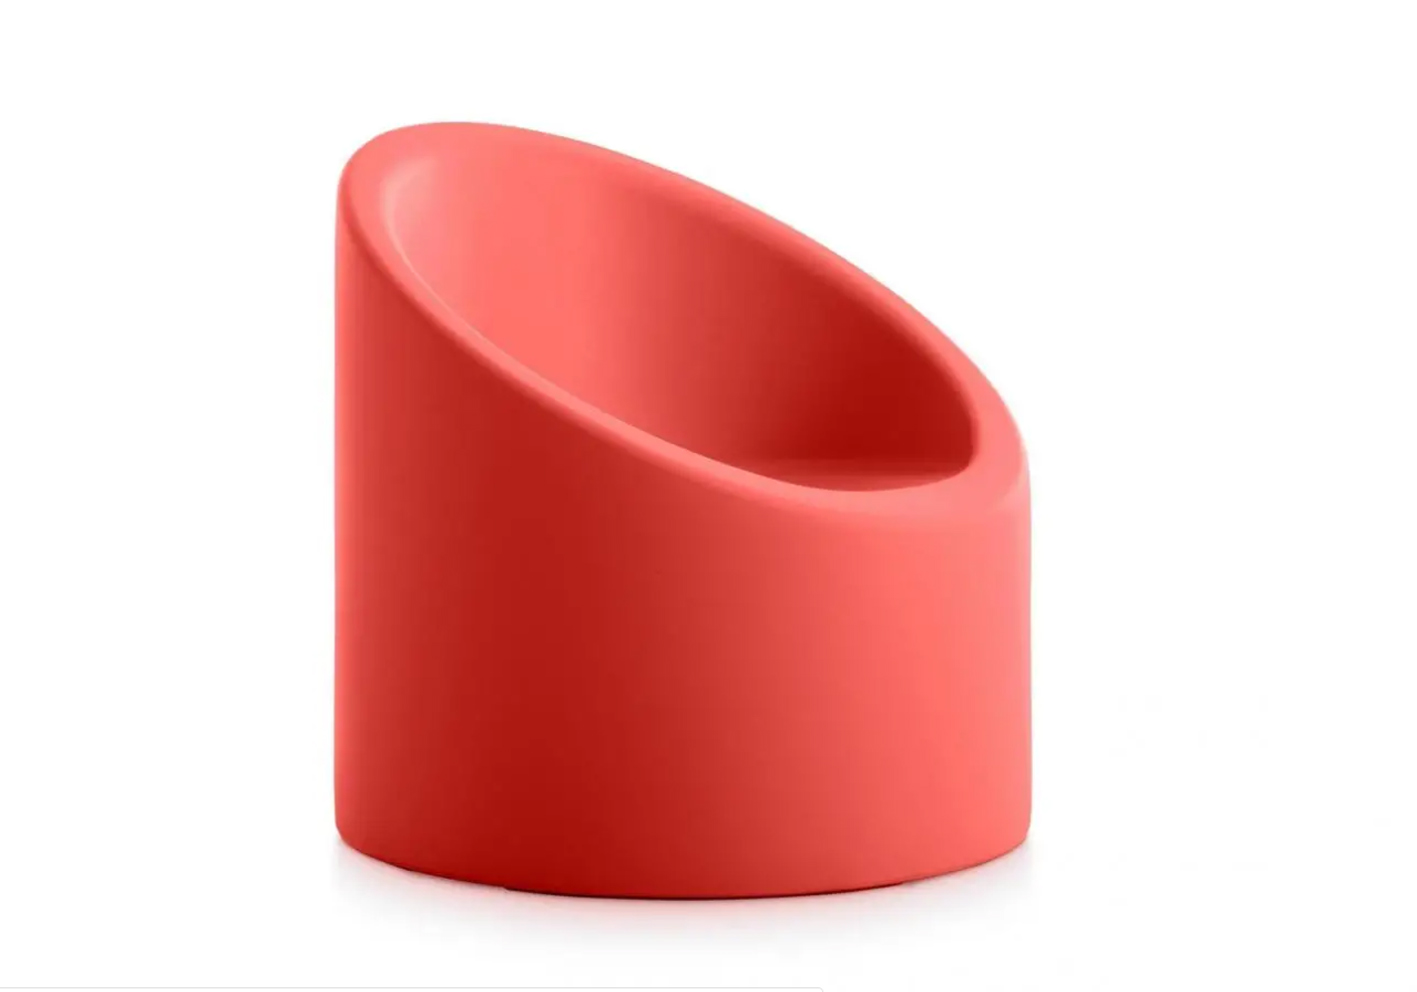 Easy to pop outside when the sun shines is Diabla's cheeky, bright pink Lipstick chair. Shaped like its namesake, it's made from 100 per cent recyclable polyethylene.